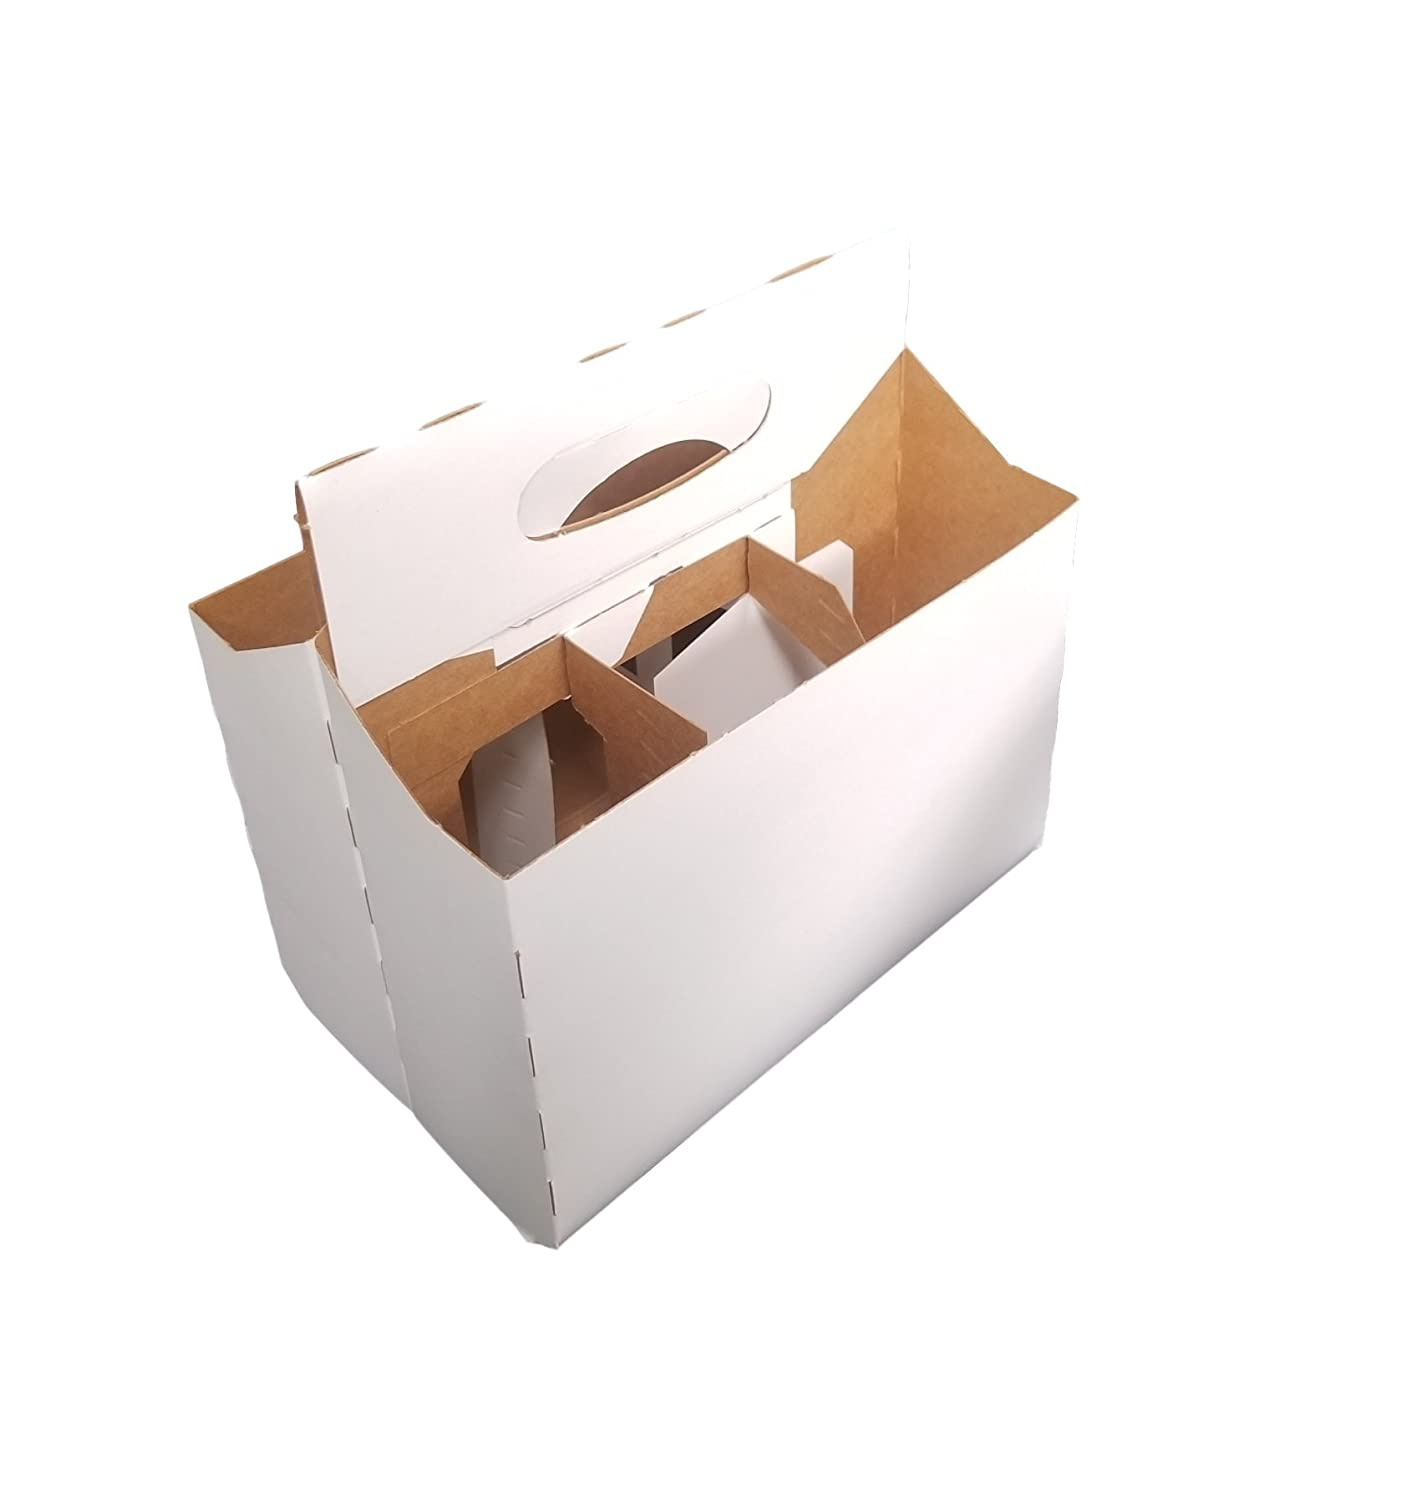 6 Pack Cardboard 12 oz. Beer/Soda Bottle Carrier by MT Products - (10 Pieces) (Kraft) 6PACK10WH